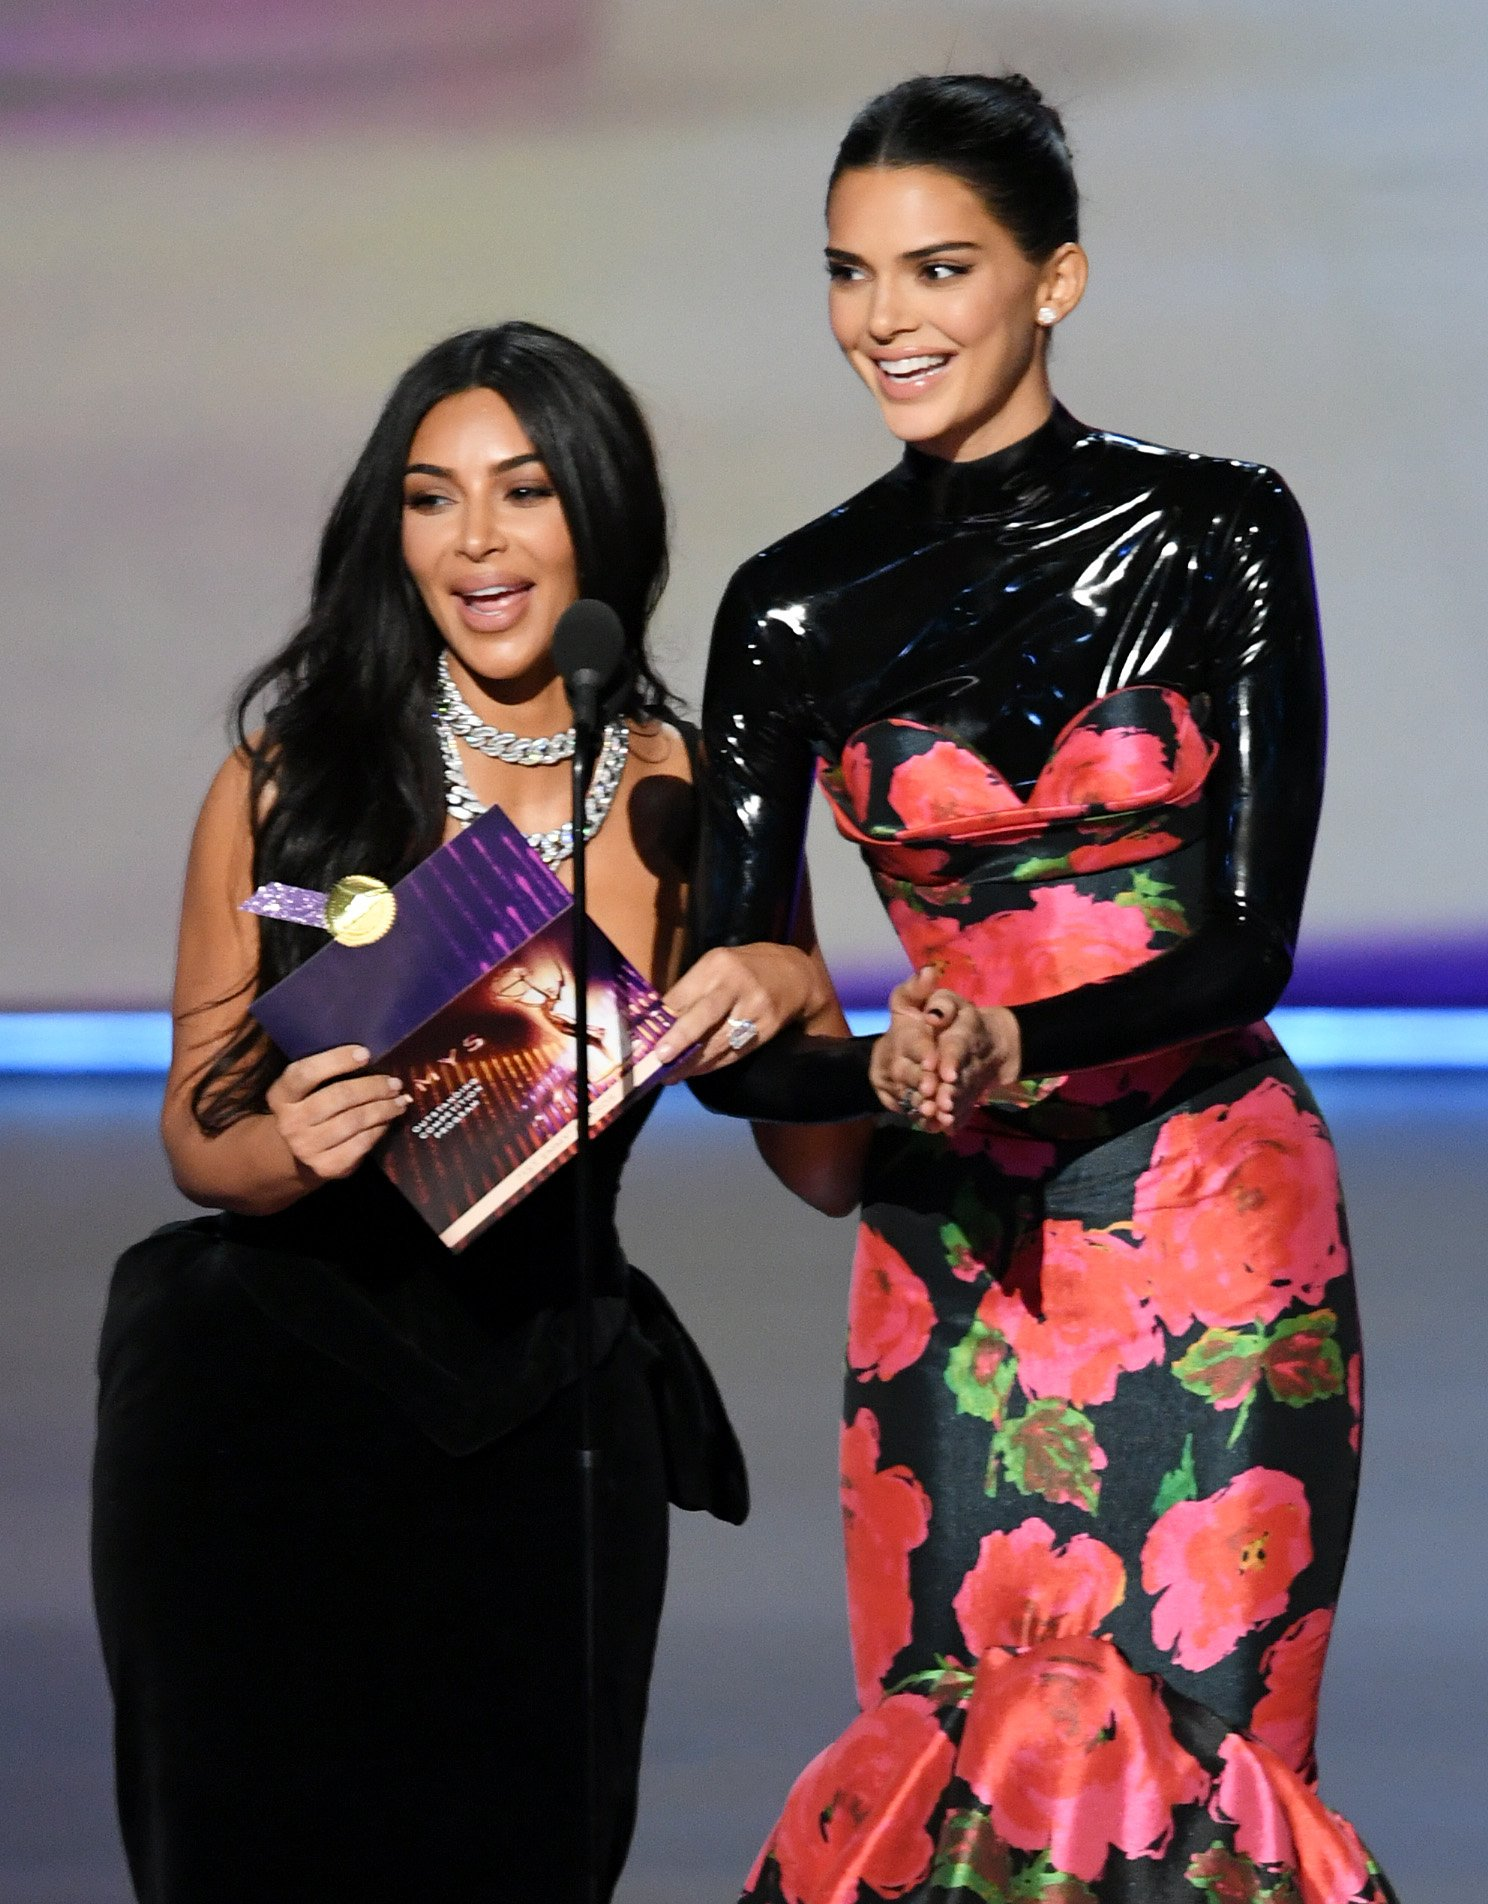 Kim Kardashian and Kendall Jenner onstage at the 71st Emmy Awards in Los Angeles, California on September 22, 2019 | Photo: Getty Images